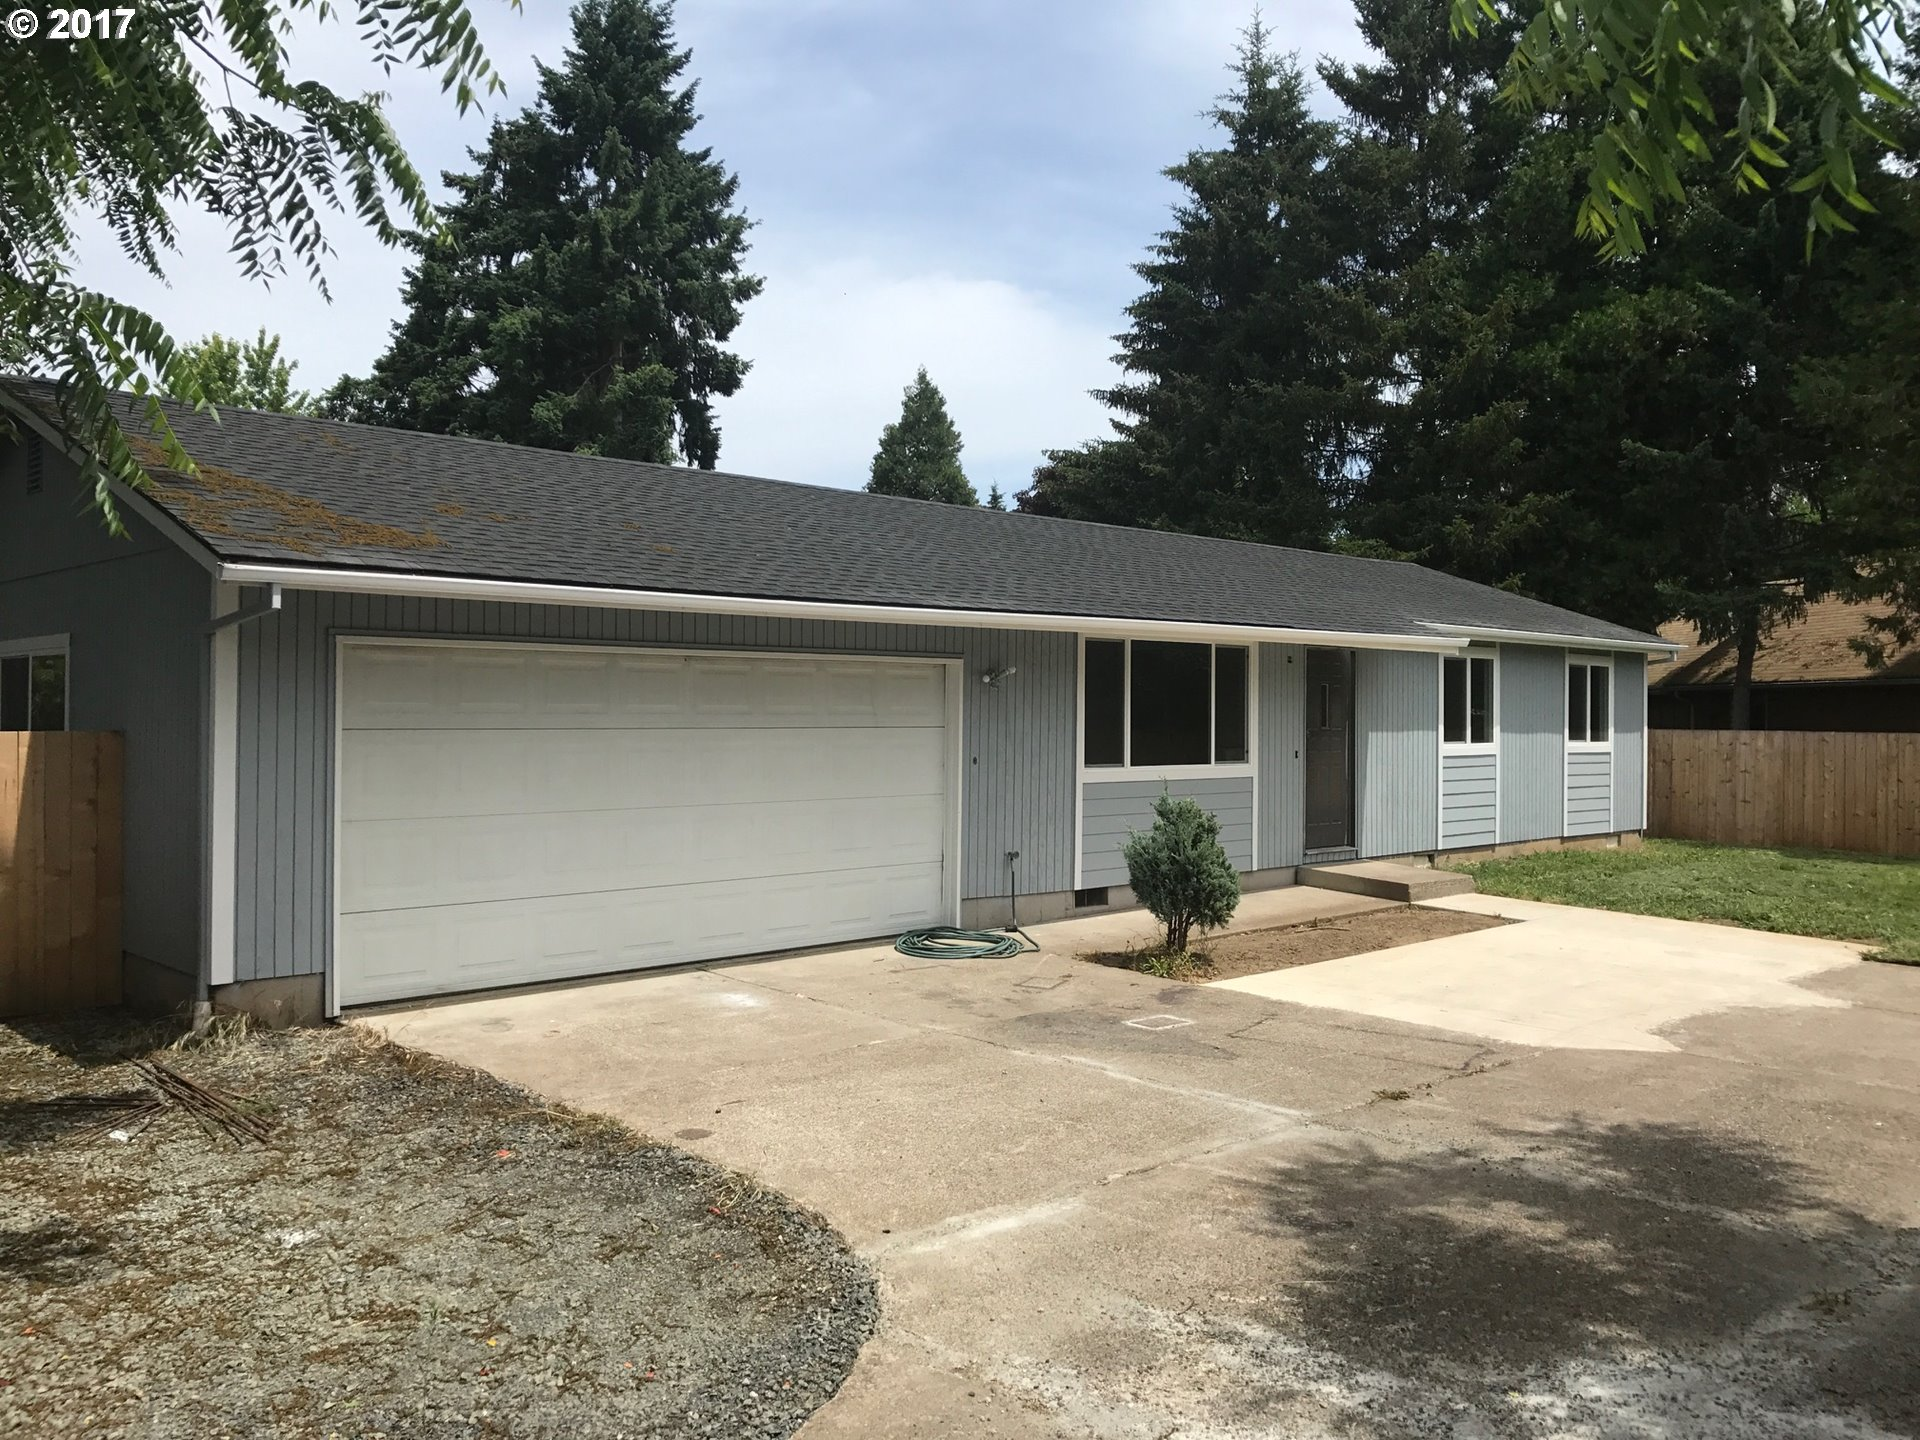 960 sq. ft 3 bedrooms 1 bathrooms  House For Sale,Eugene, OR